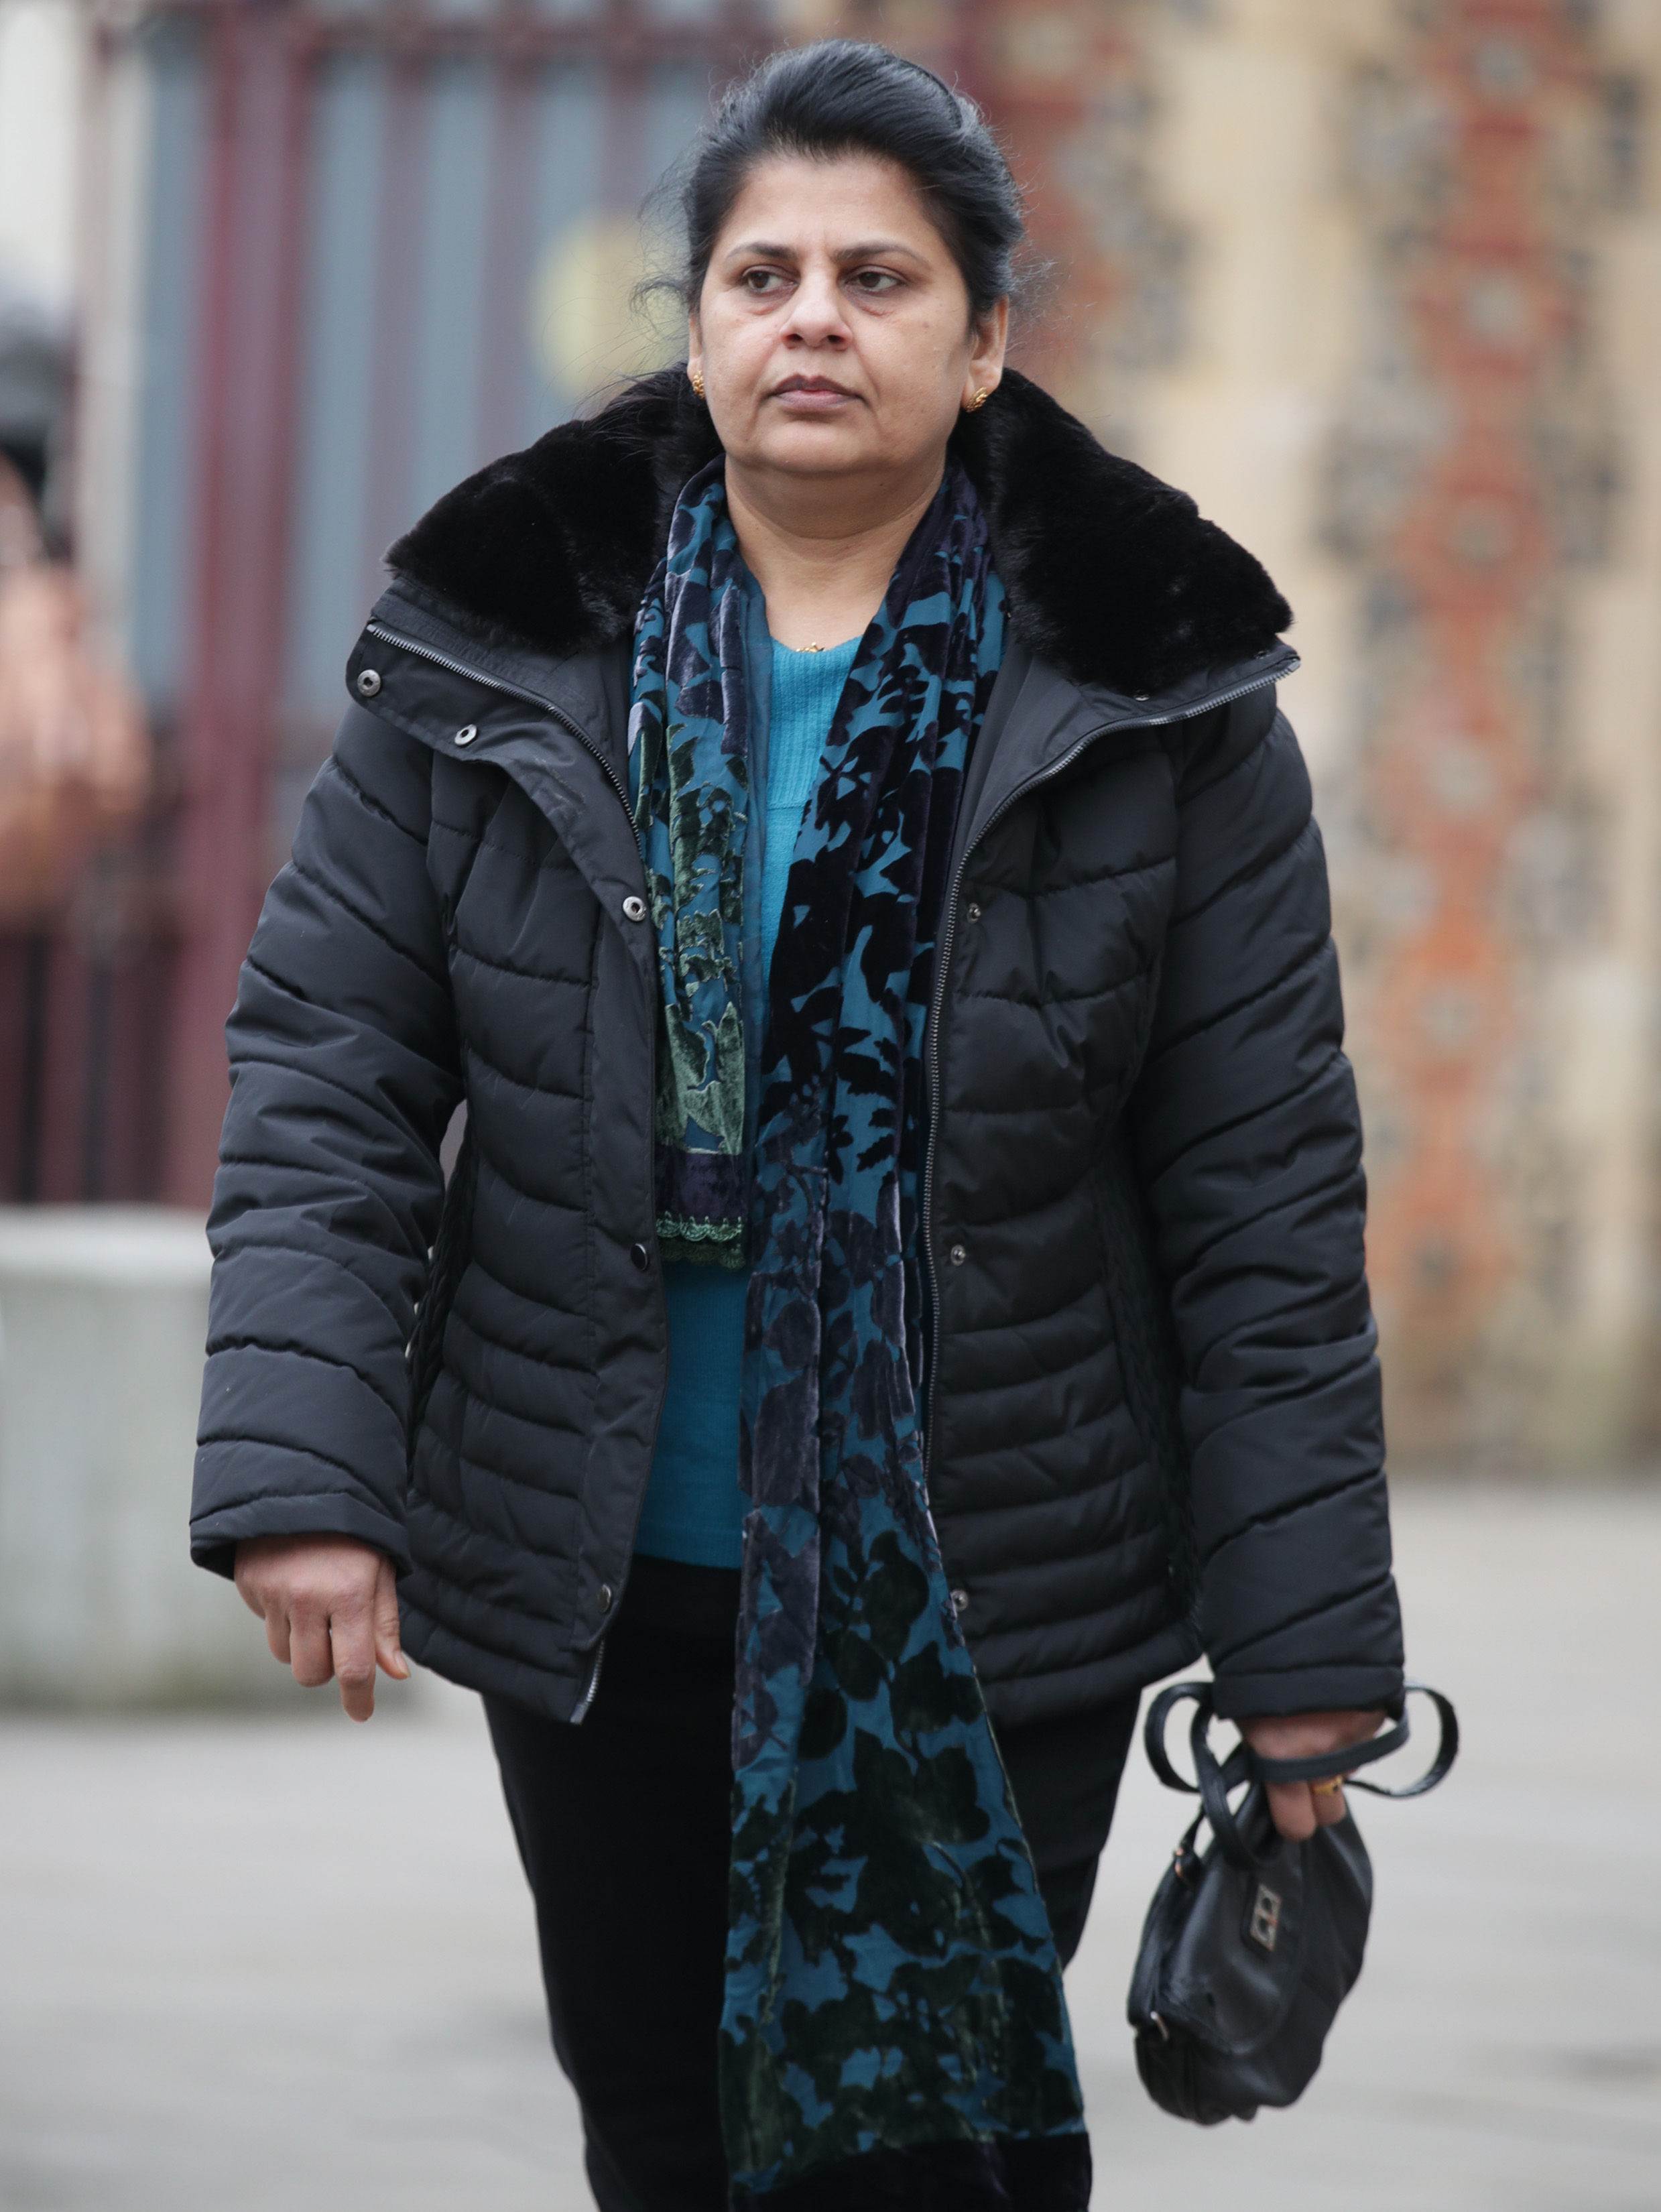 Ancy Joseph, widow of Cyriac Joseph, arriving at Reading Crown Court (Yui Mok/PA)